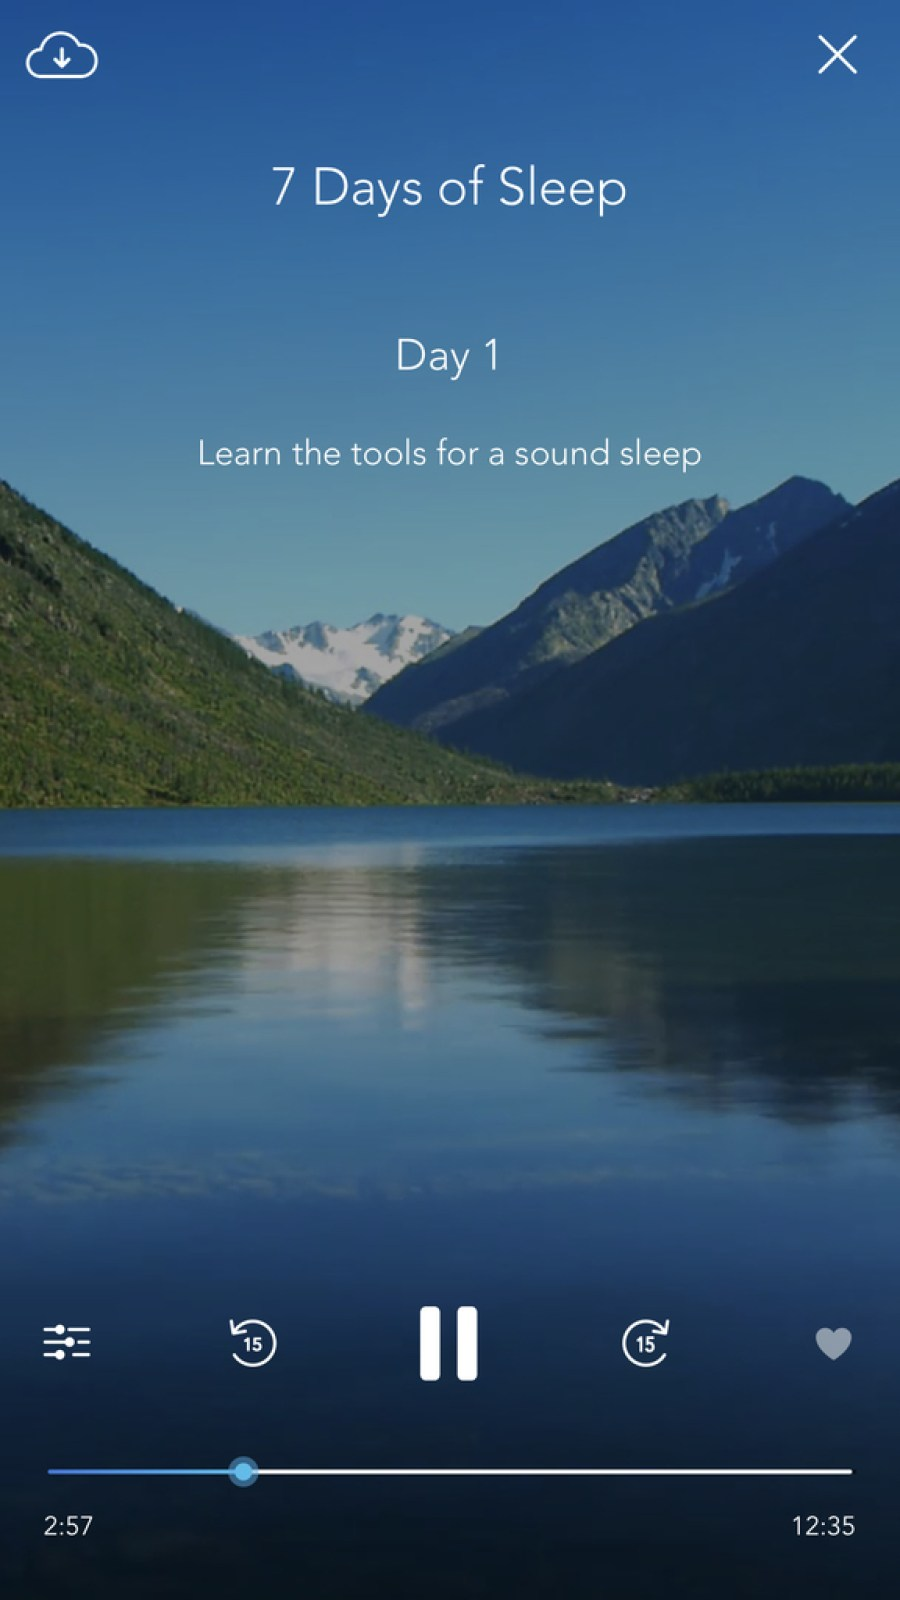 Calm lets you enjoy a wide range of meditation tutorials, mixing in the sounds of nature to add ambiance.